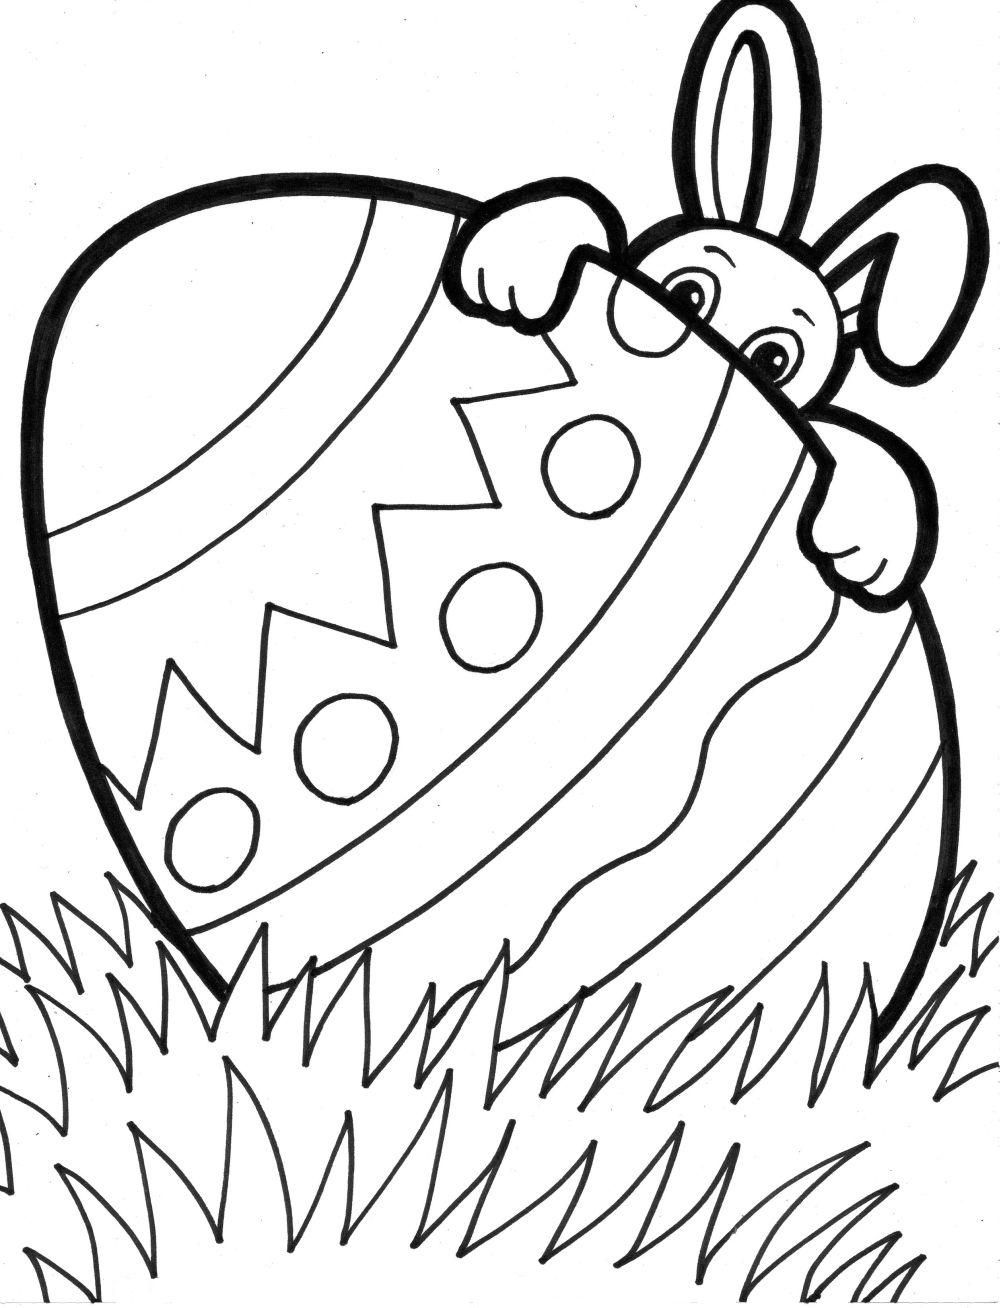 16 super cute and free easter printable coloring pages for kids - Coloring Pages Easter Print